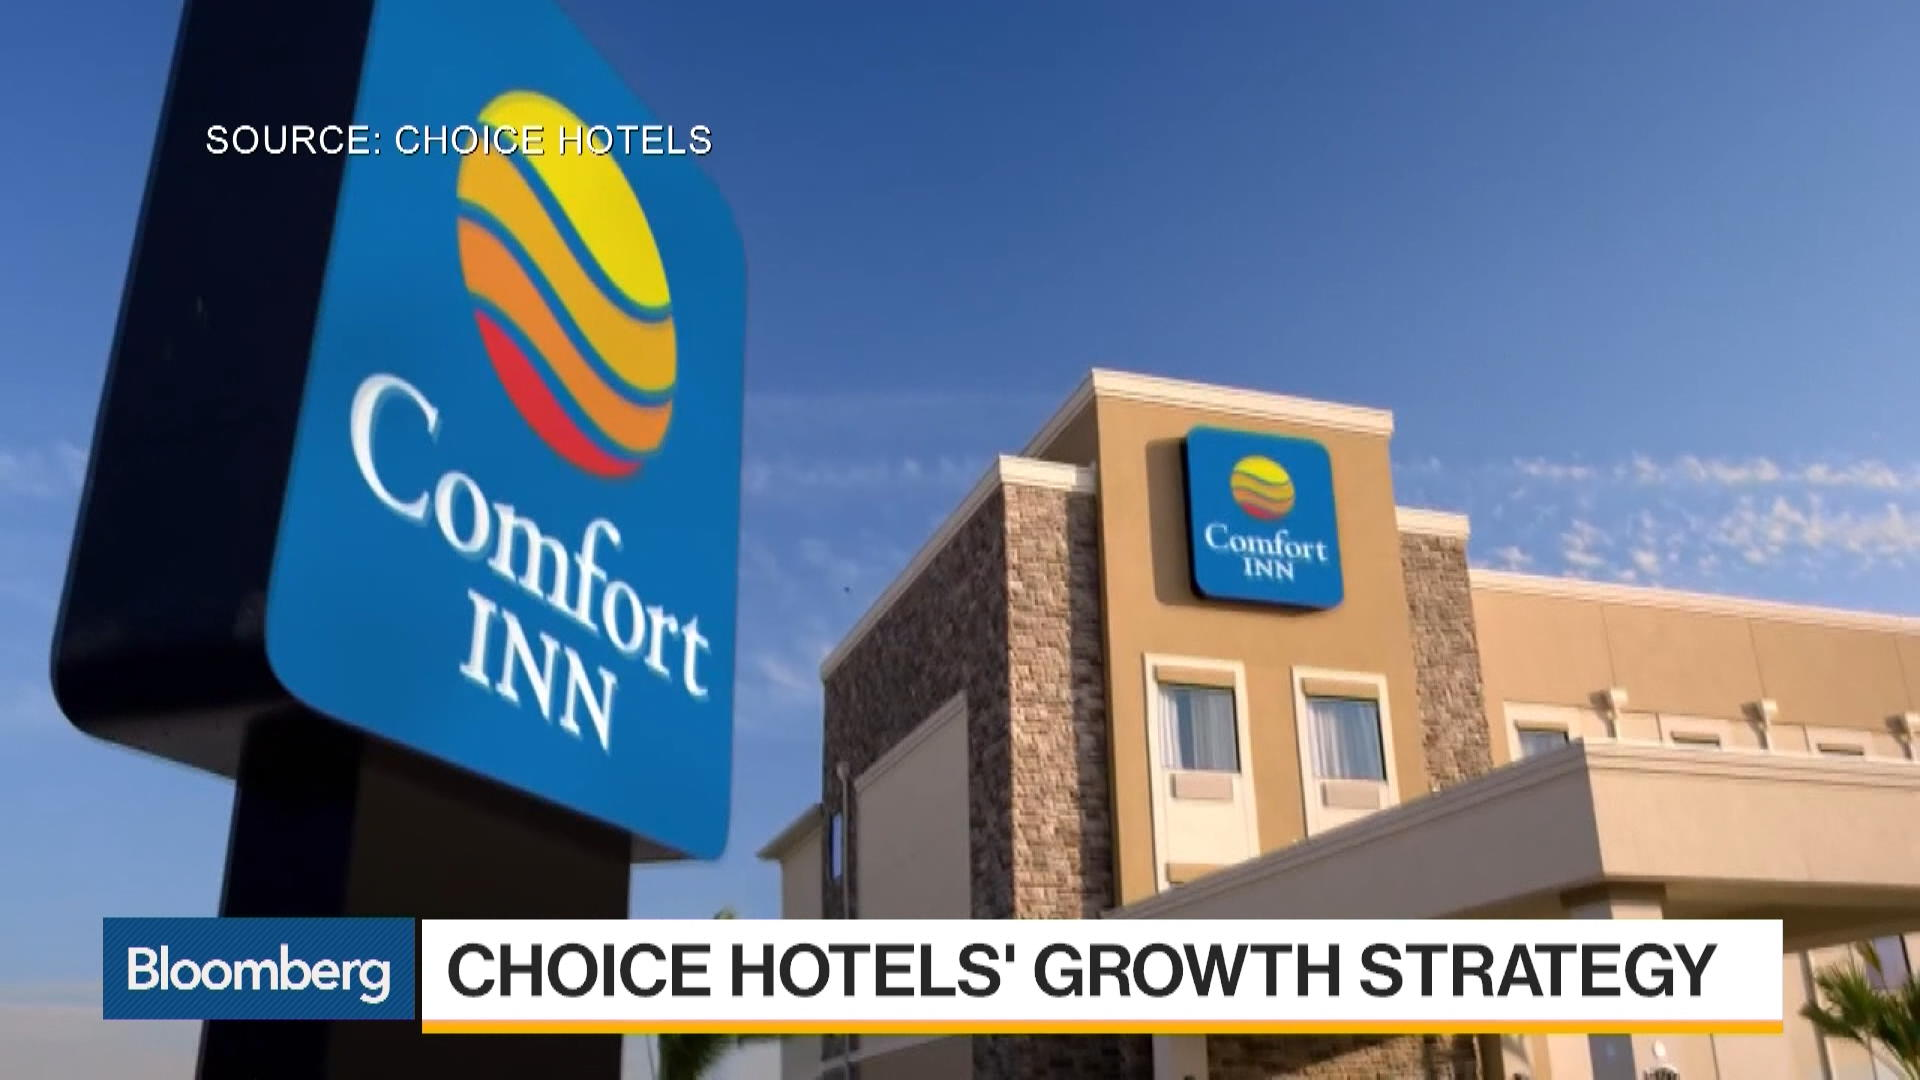 Choice hotels ceo we 39 re a buyer not a seller bloomberg for Choice hotels